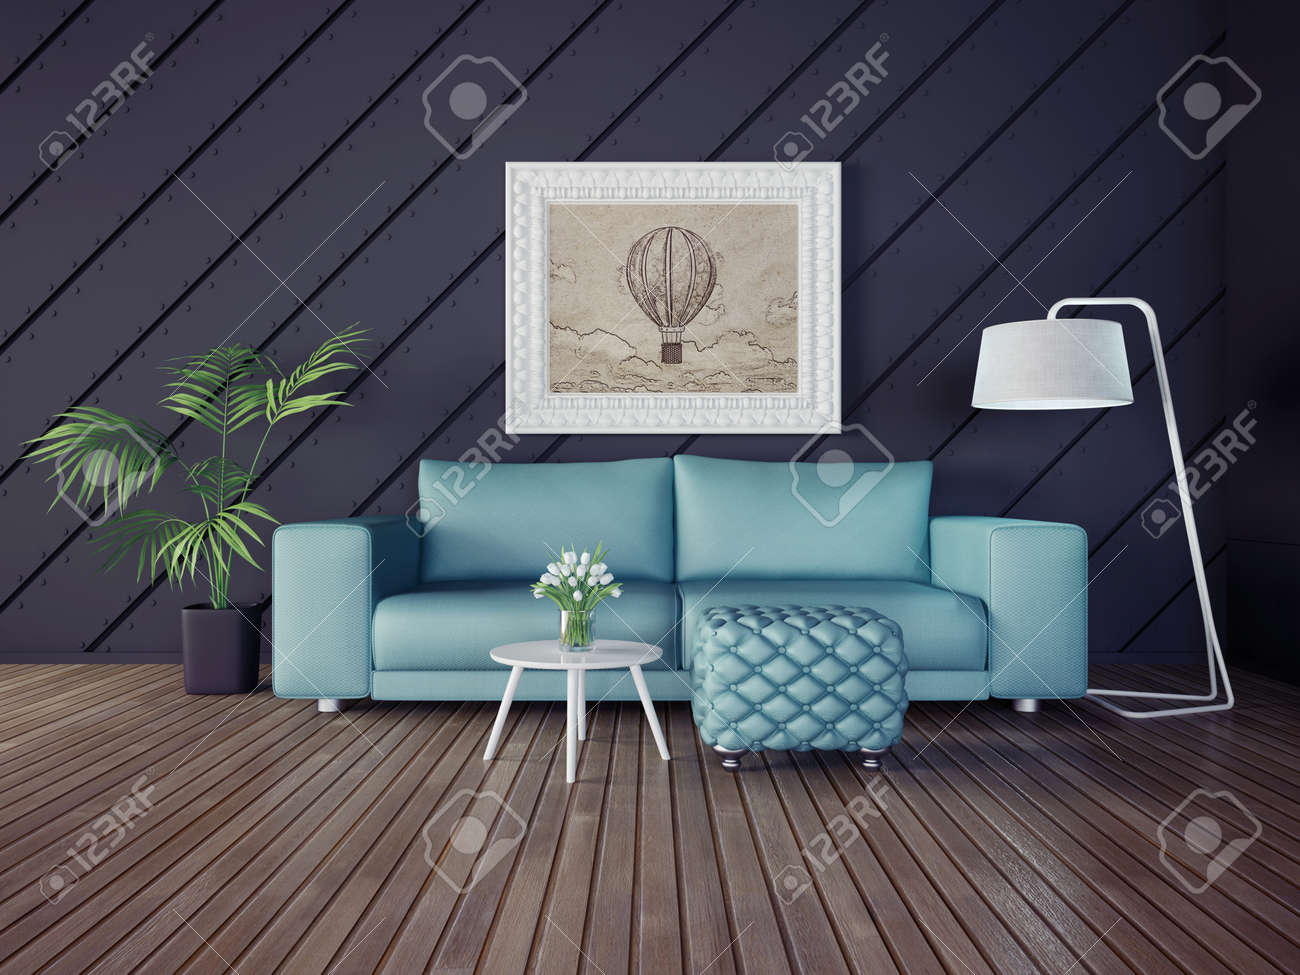 3d illustration interior room with a beautiful furniture - 34178031